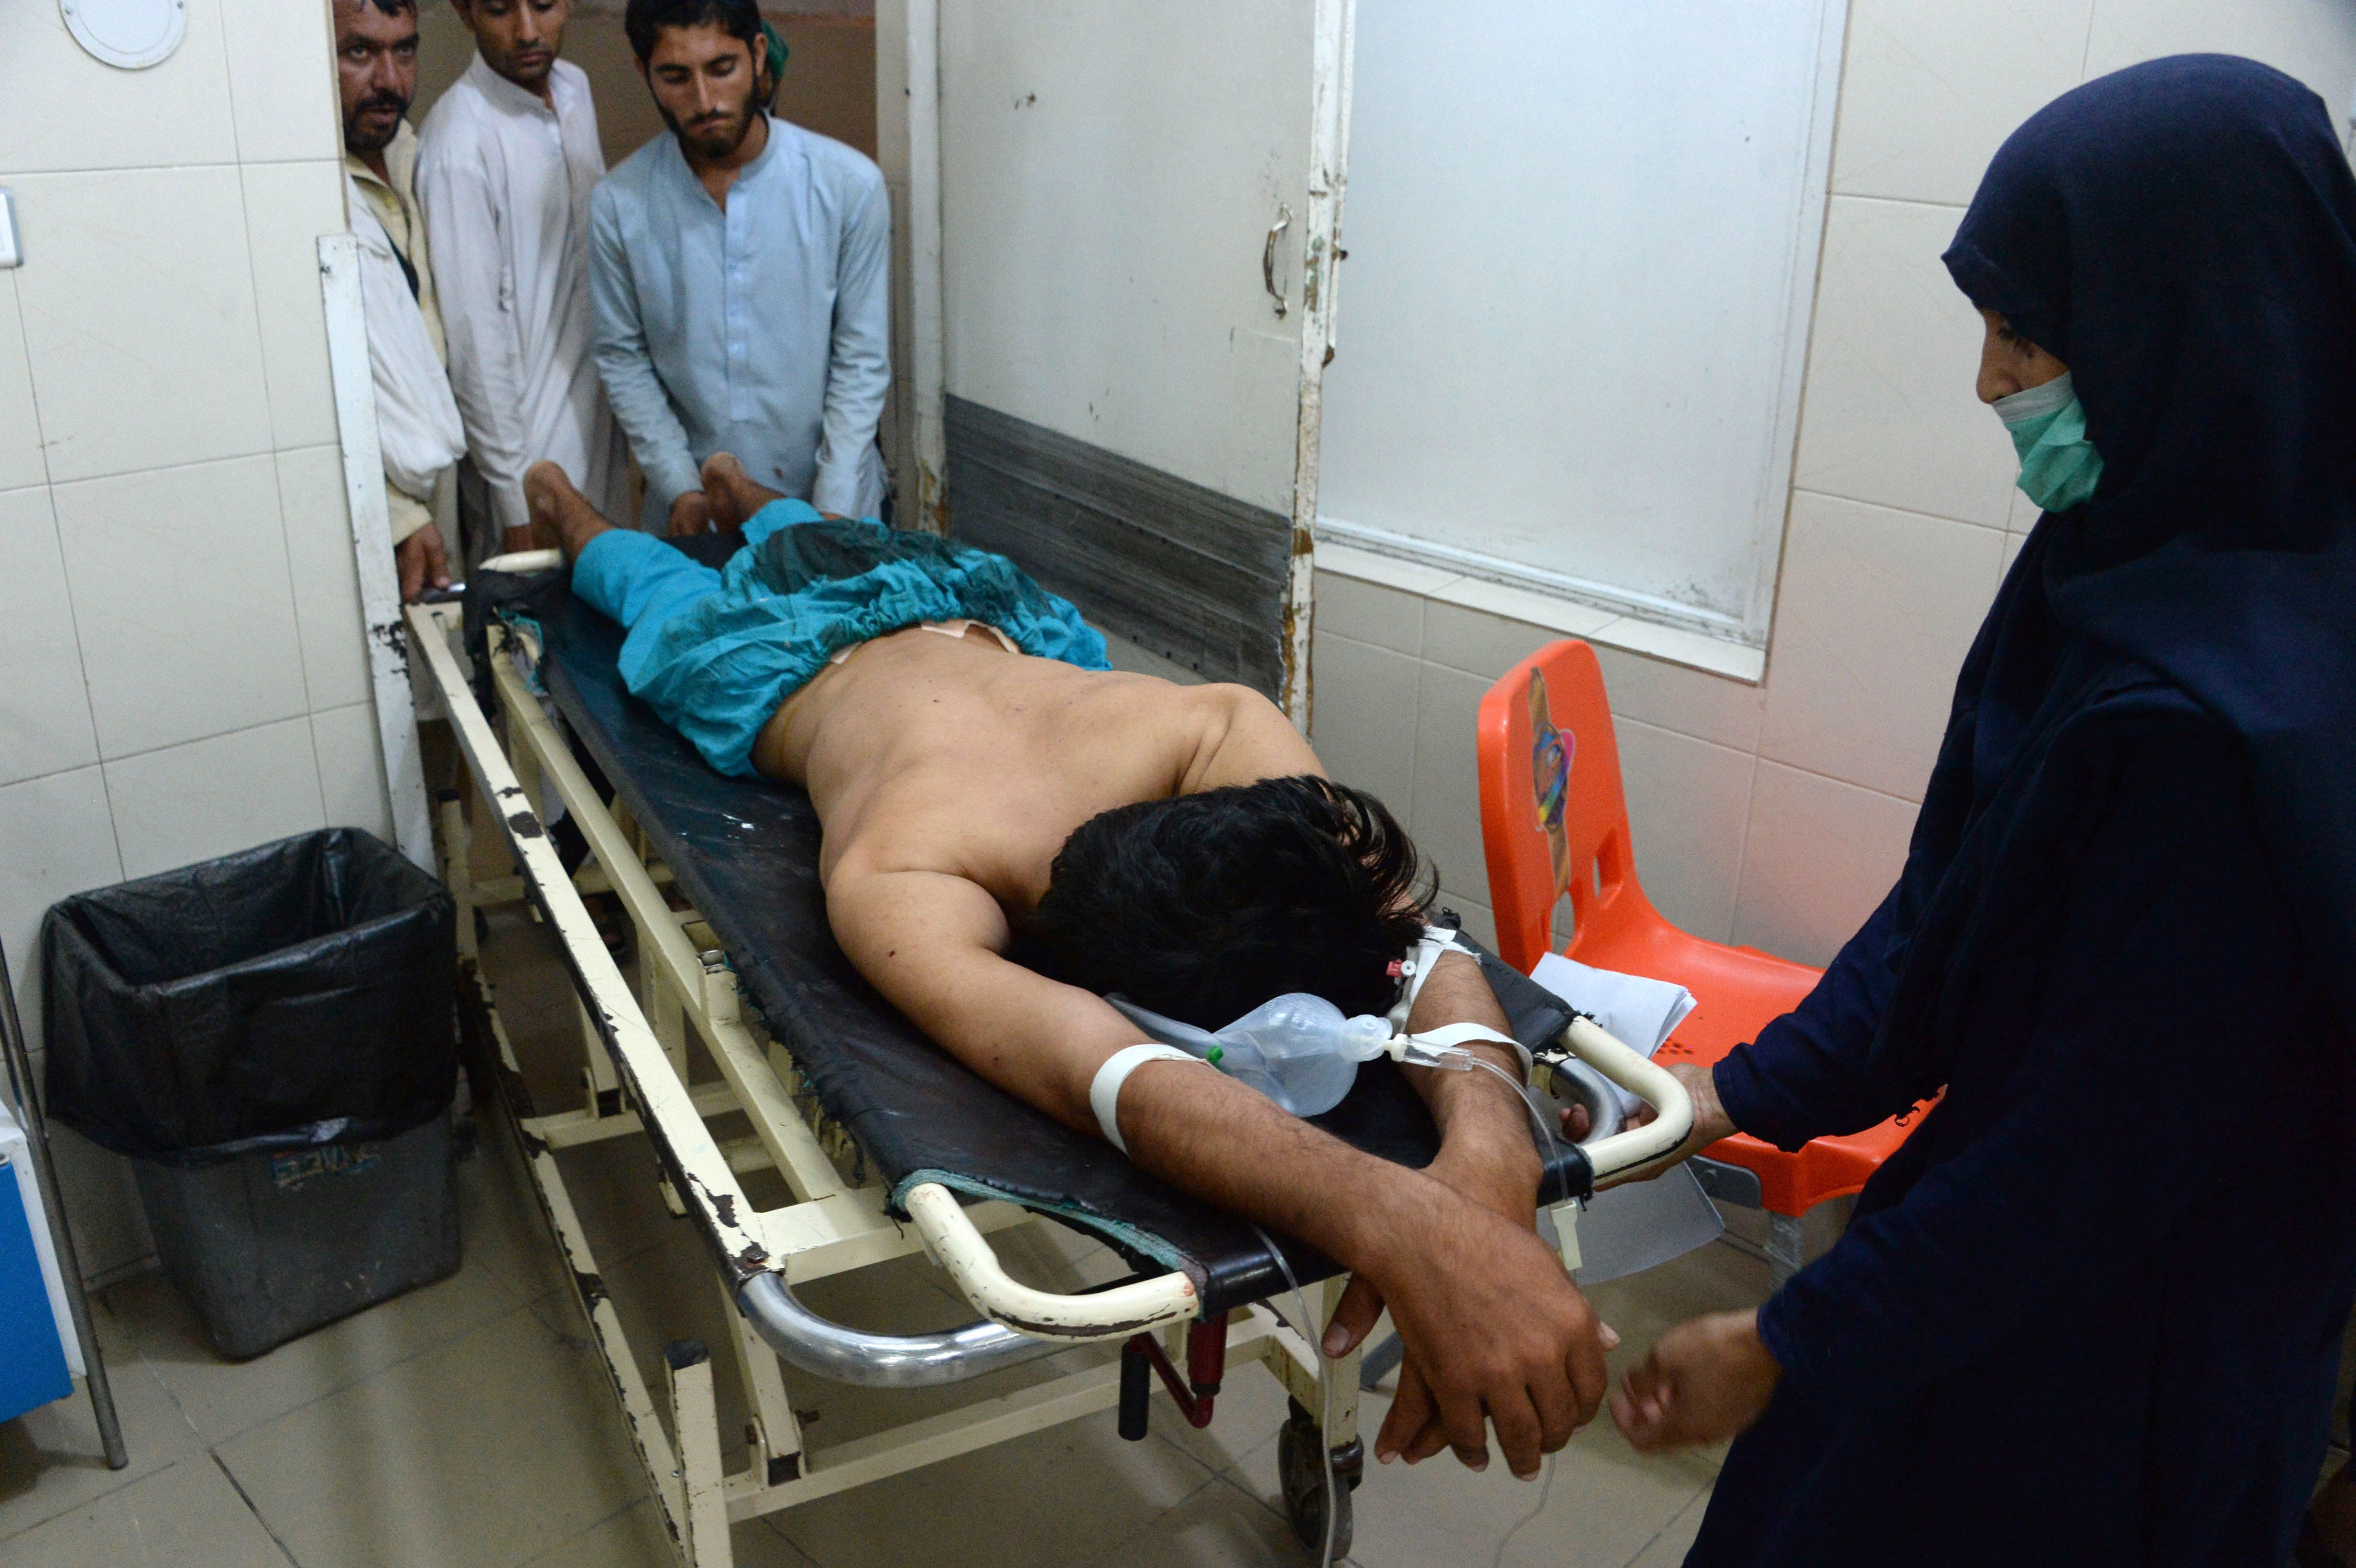 An injured Afghan youth receives treatment at a hospital following a suspected US drone airstrike in the Achin district of Nangarhar province on September 28,2016.   A suspected US drone strike has killed 18 people in the restive eastern province of Nangarhar, with some Afghan sources claiming some of the fatalities were Afghan civilians. / AFP / NOORULLAH SHIRZADA        (Photo credit should read NOORULLAH SHIRZADA/AFP/Getty Images)